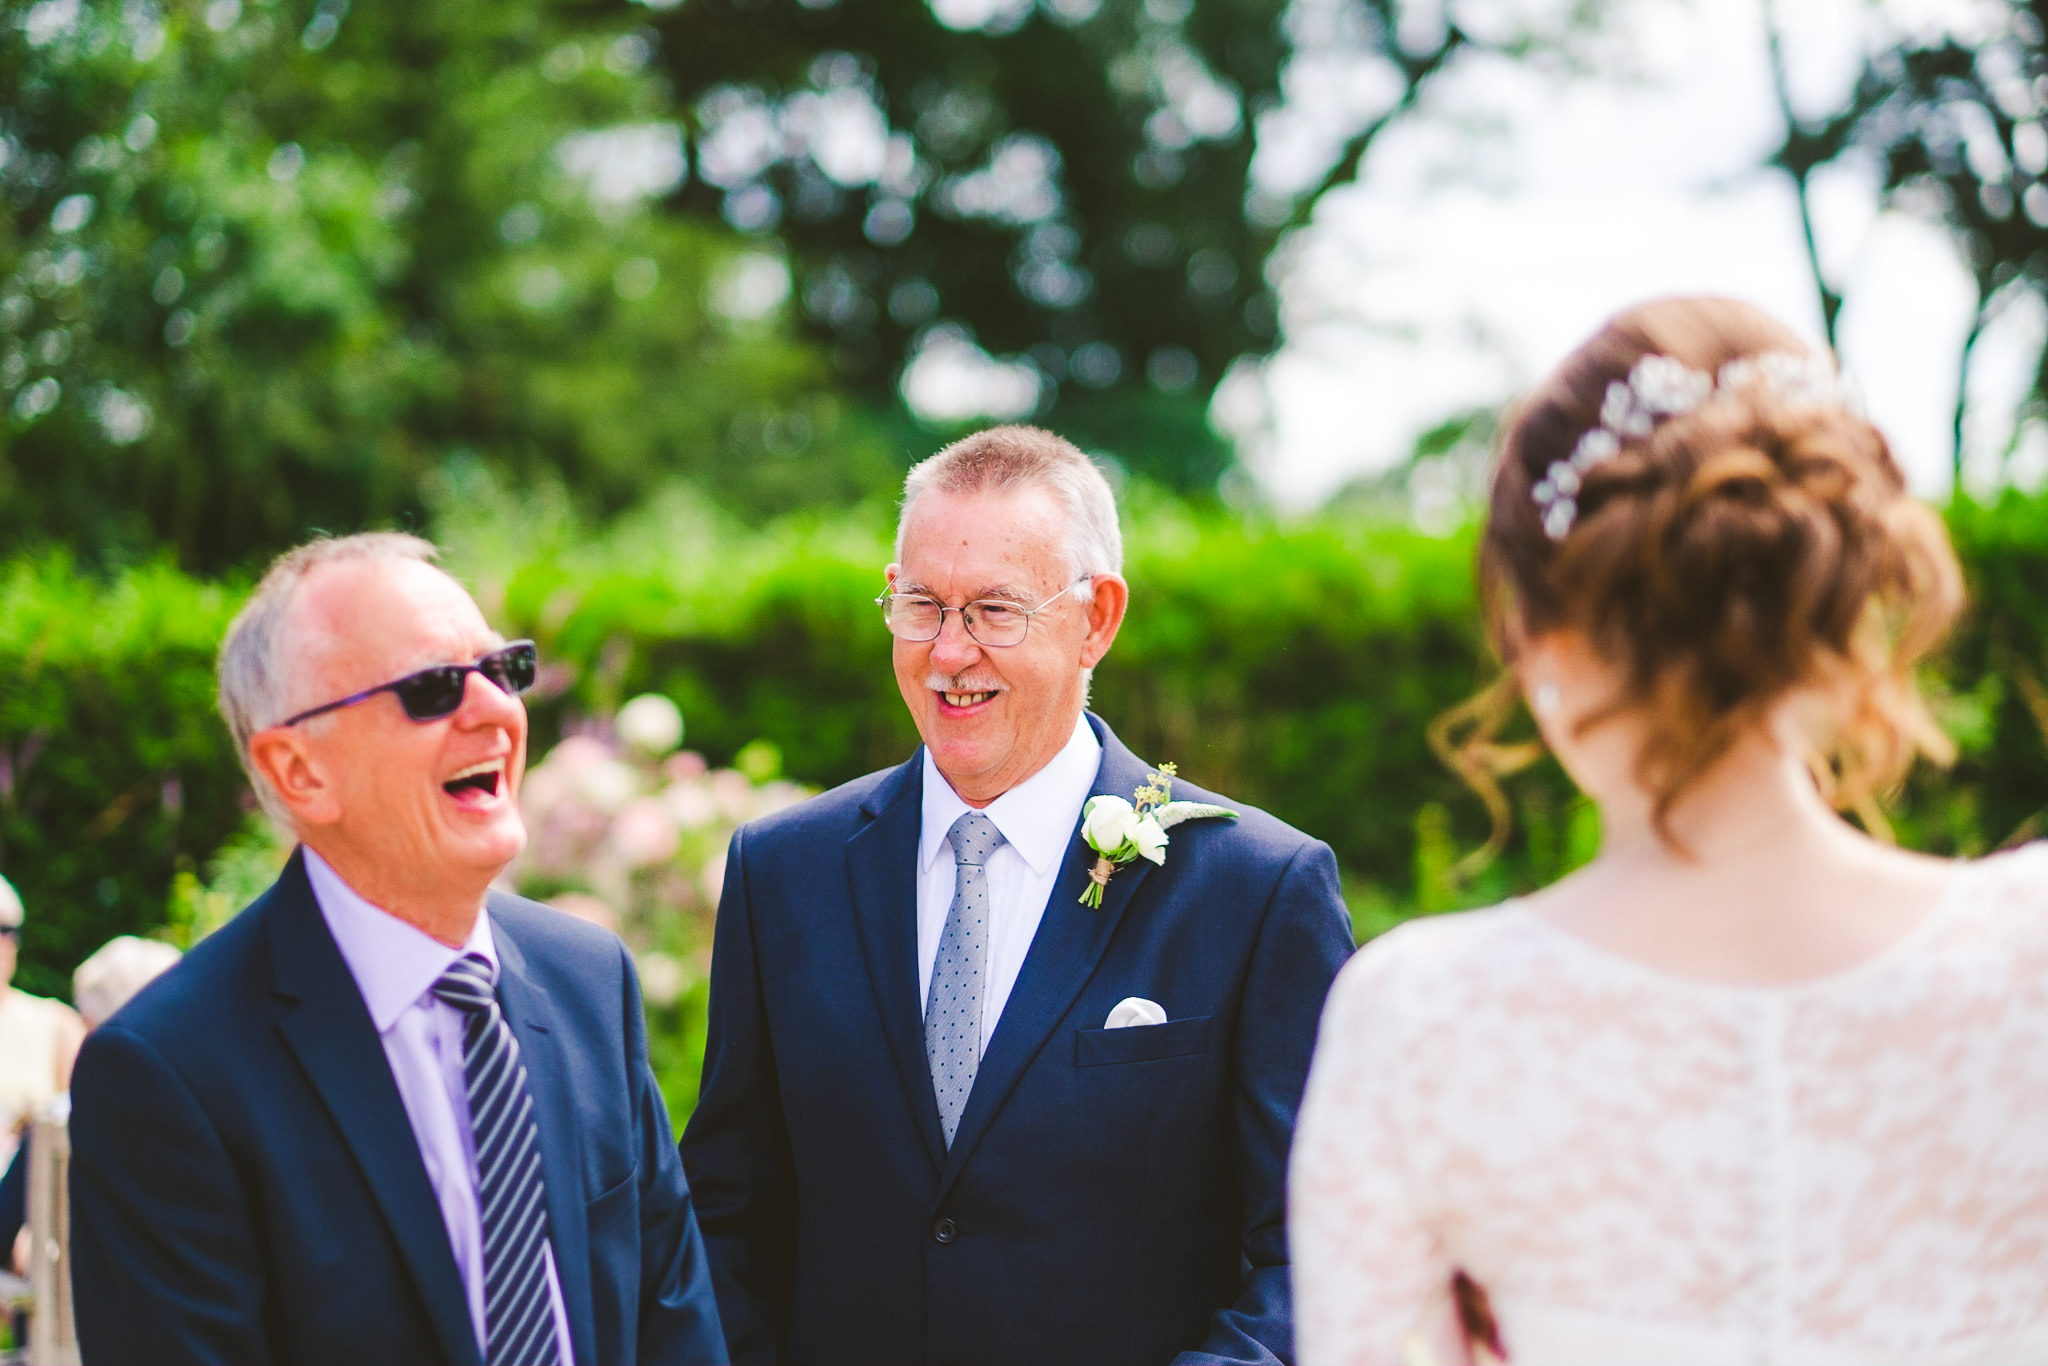 Wedding guests laugh while relaxing outside